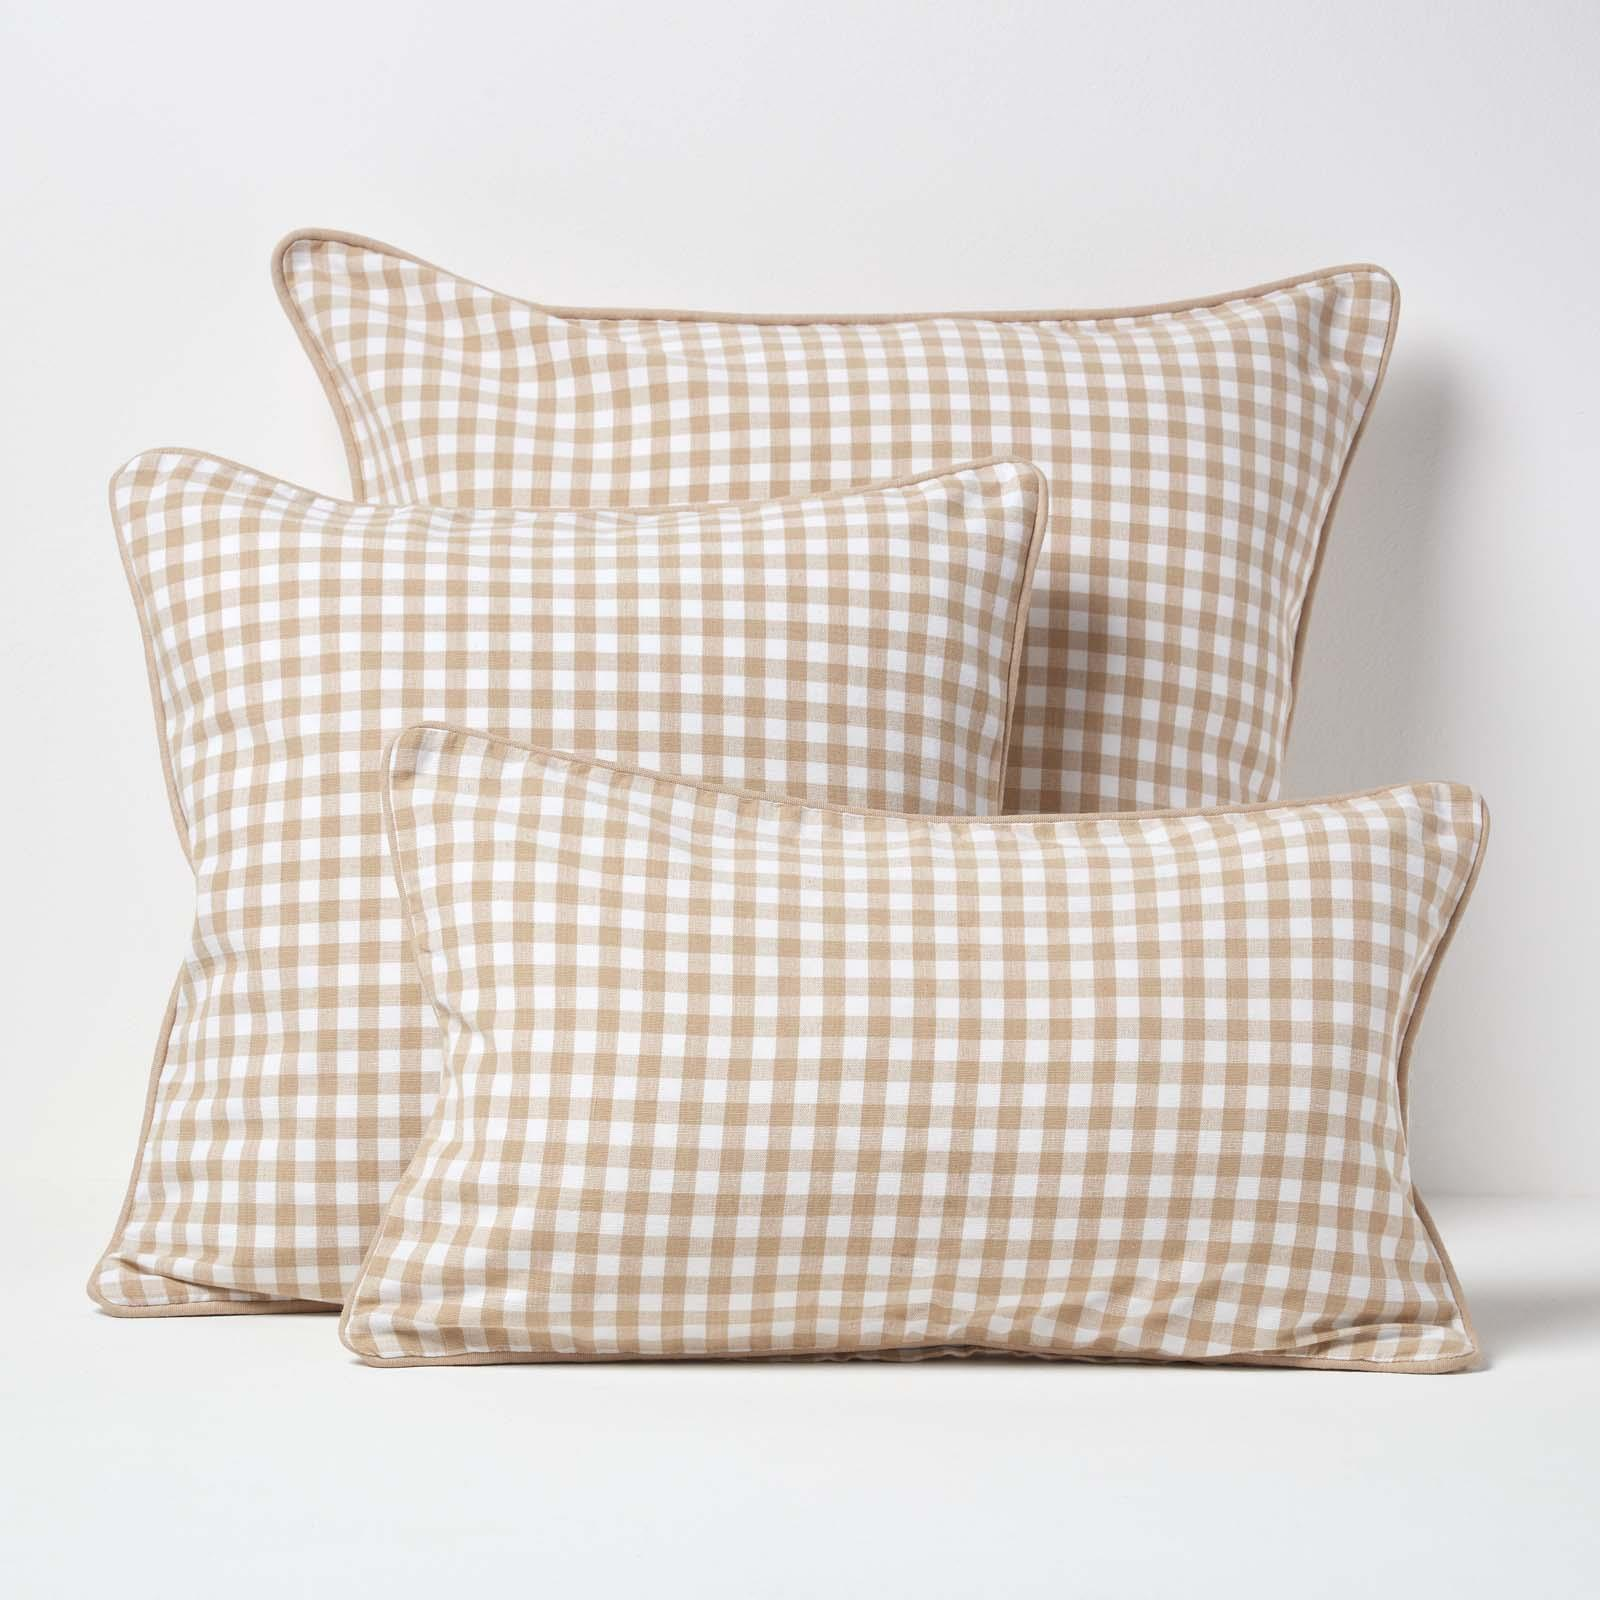 100 Cotton Gingham Check Cushion Cover Square Rectangular Sofa Pillow Case Ebay